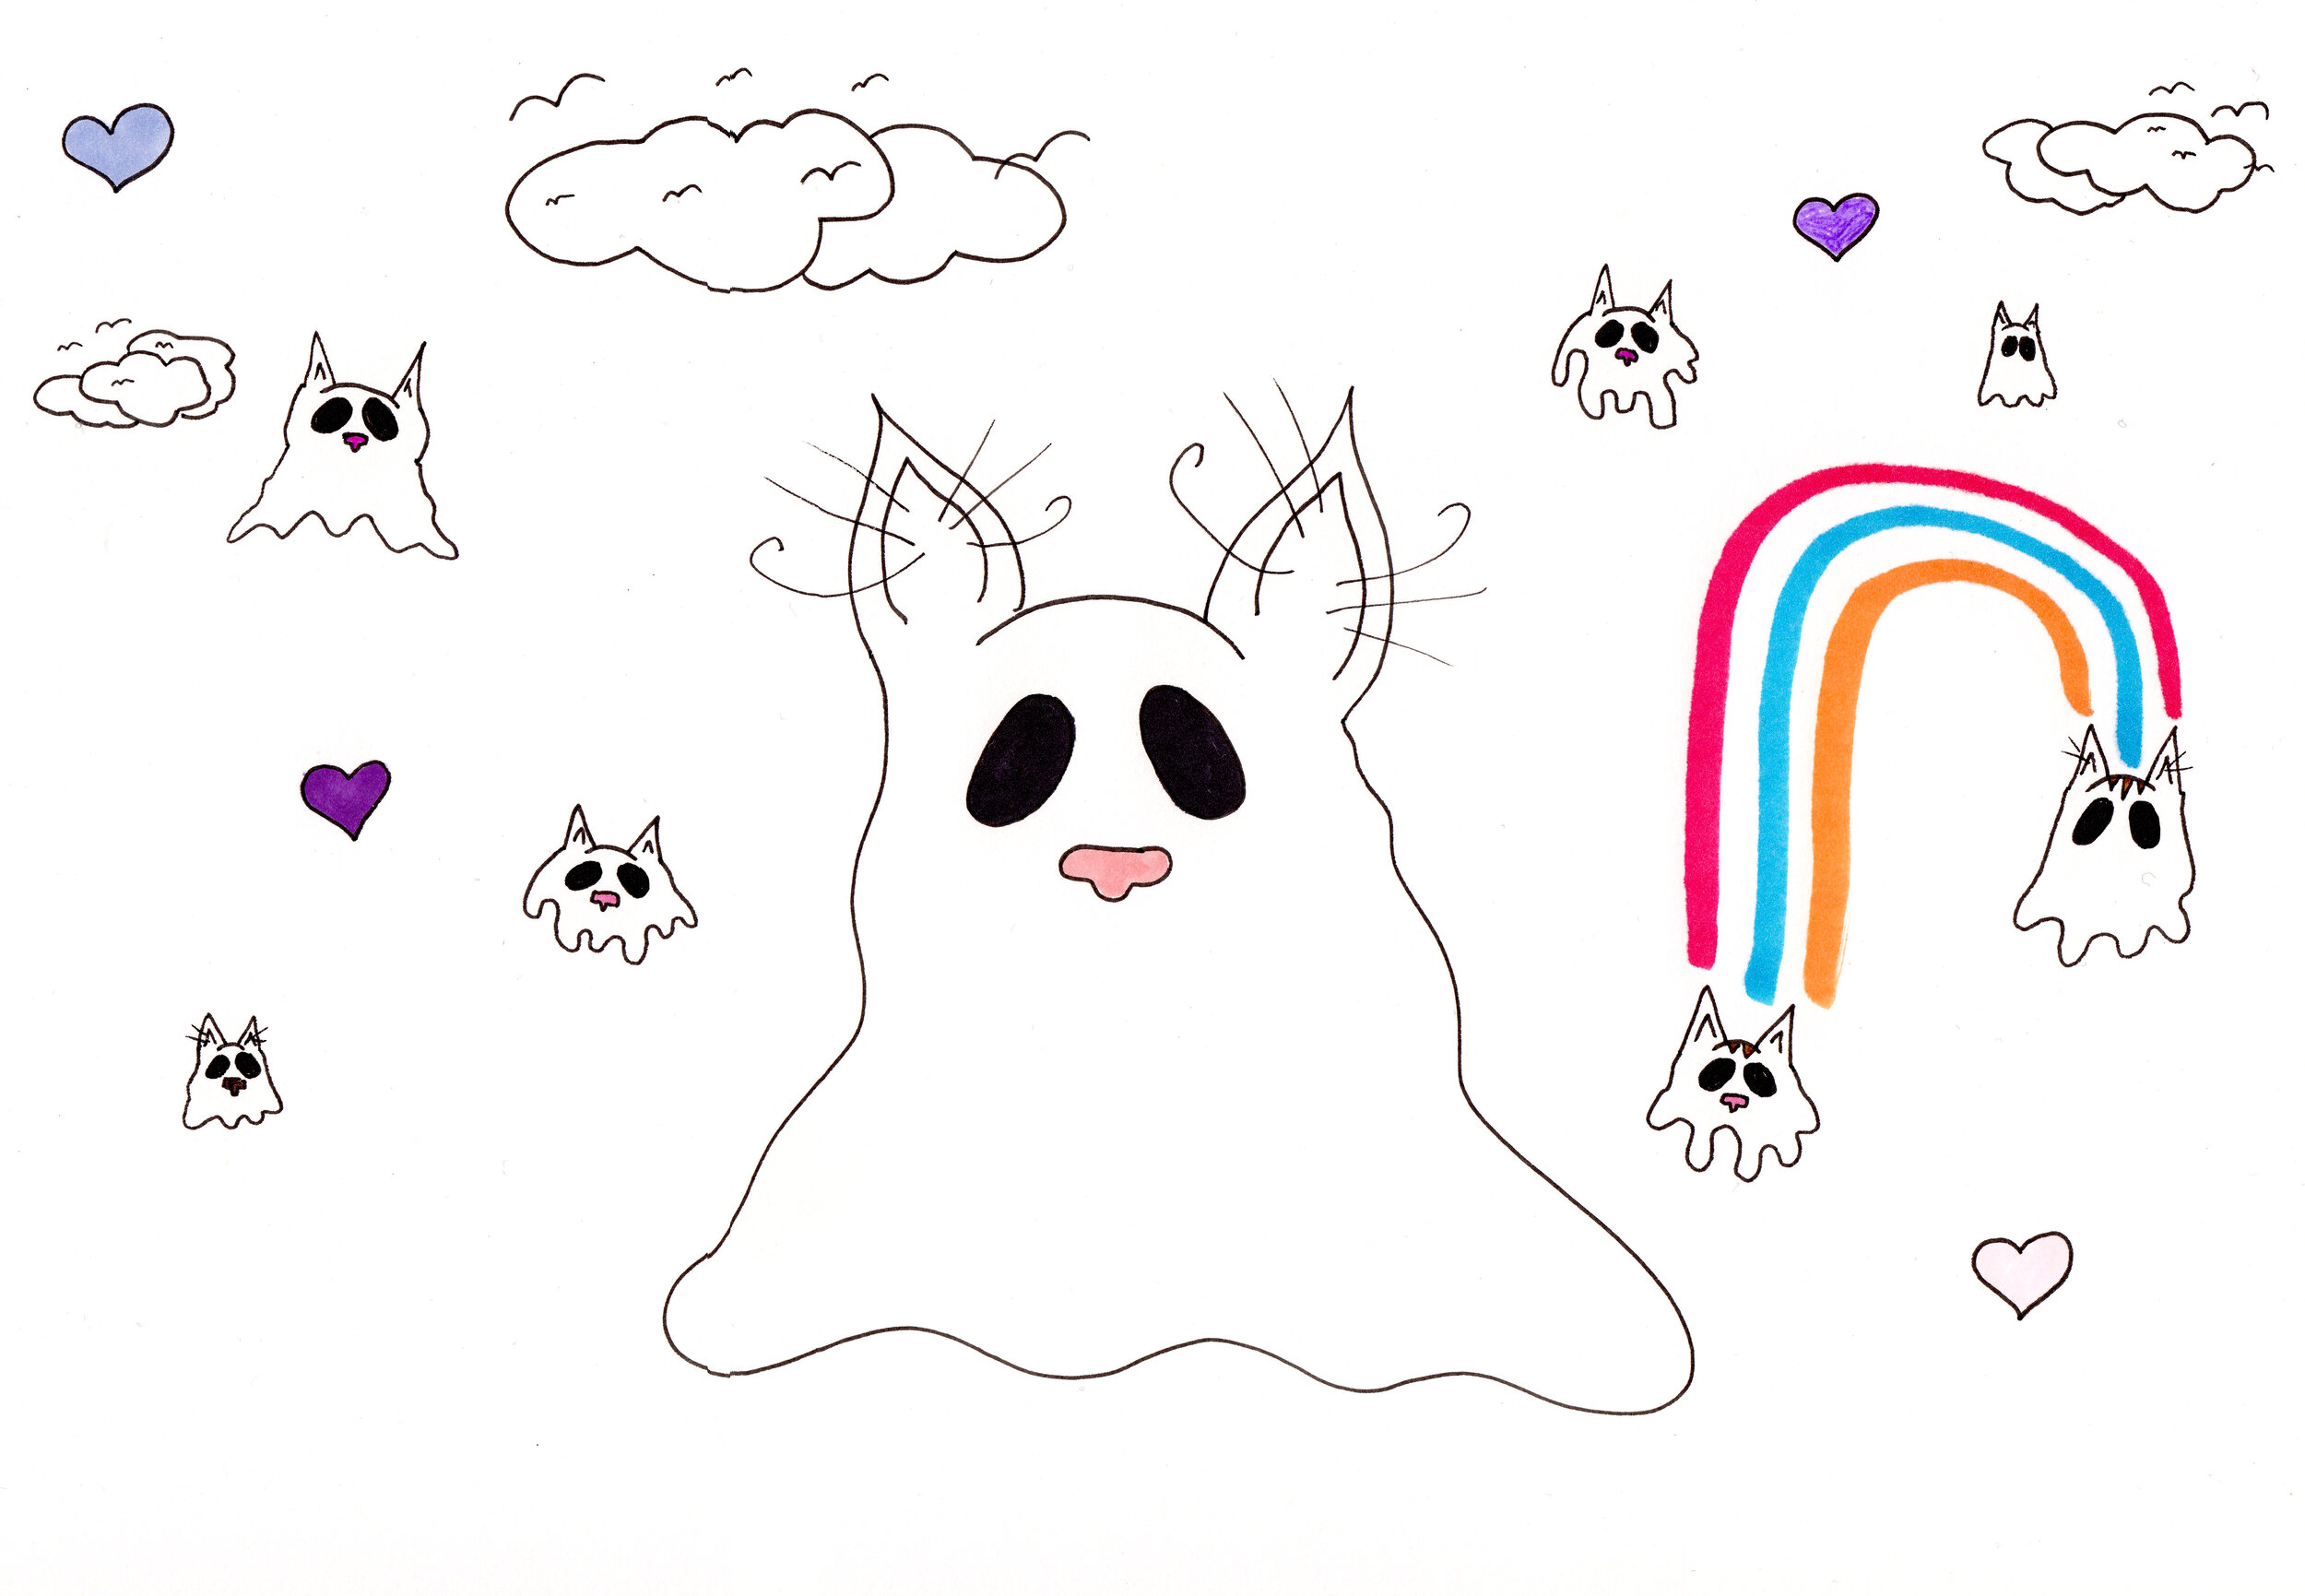 Kitten ghosts and hearts .jpg